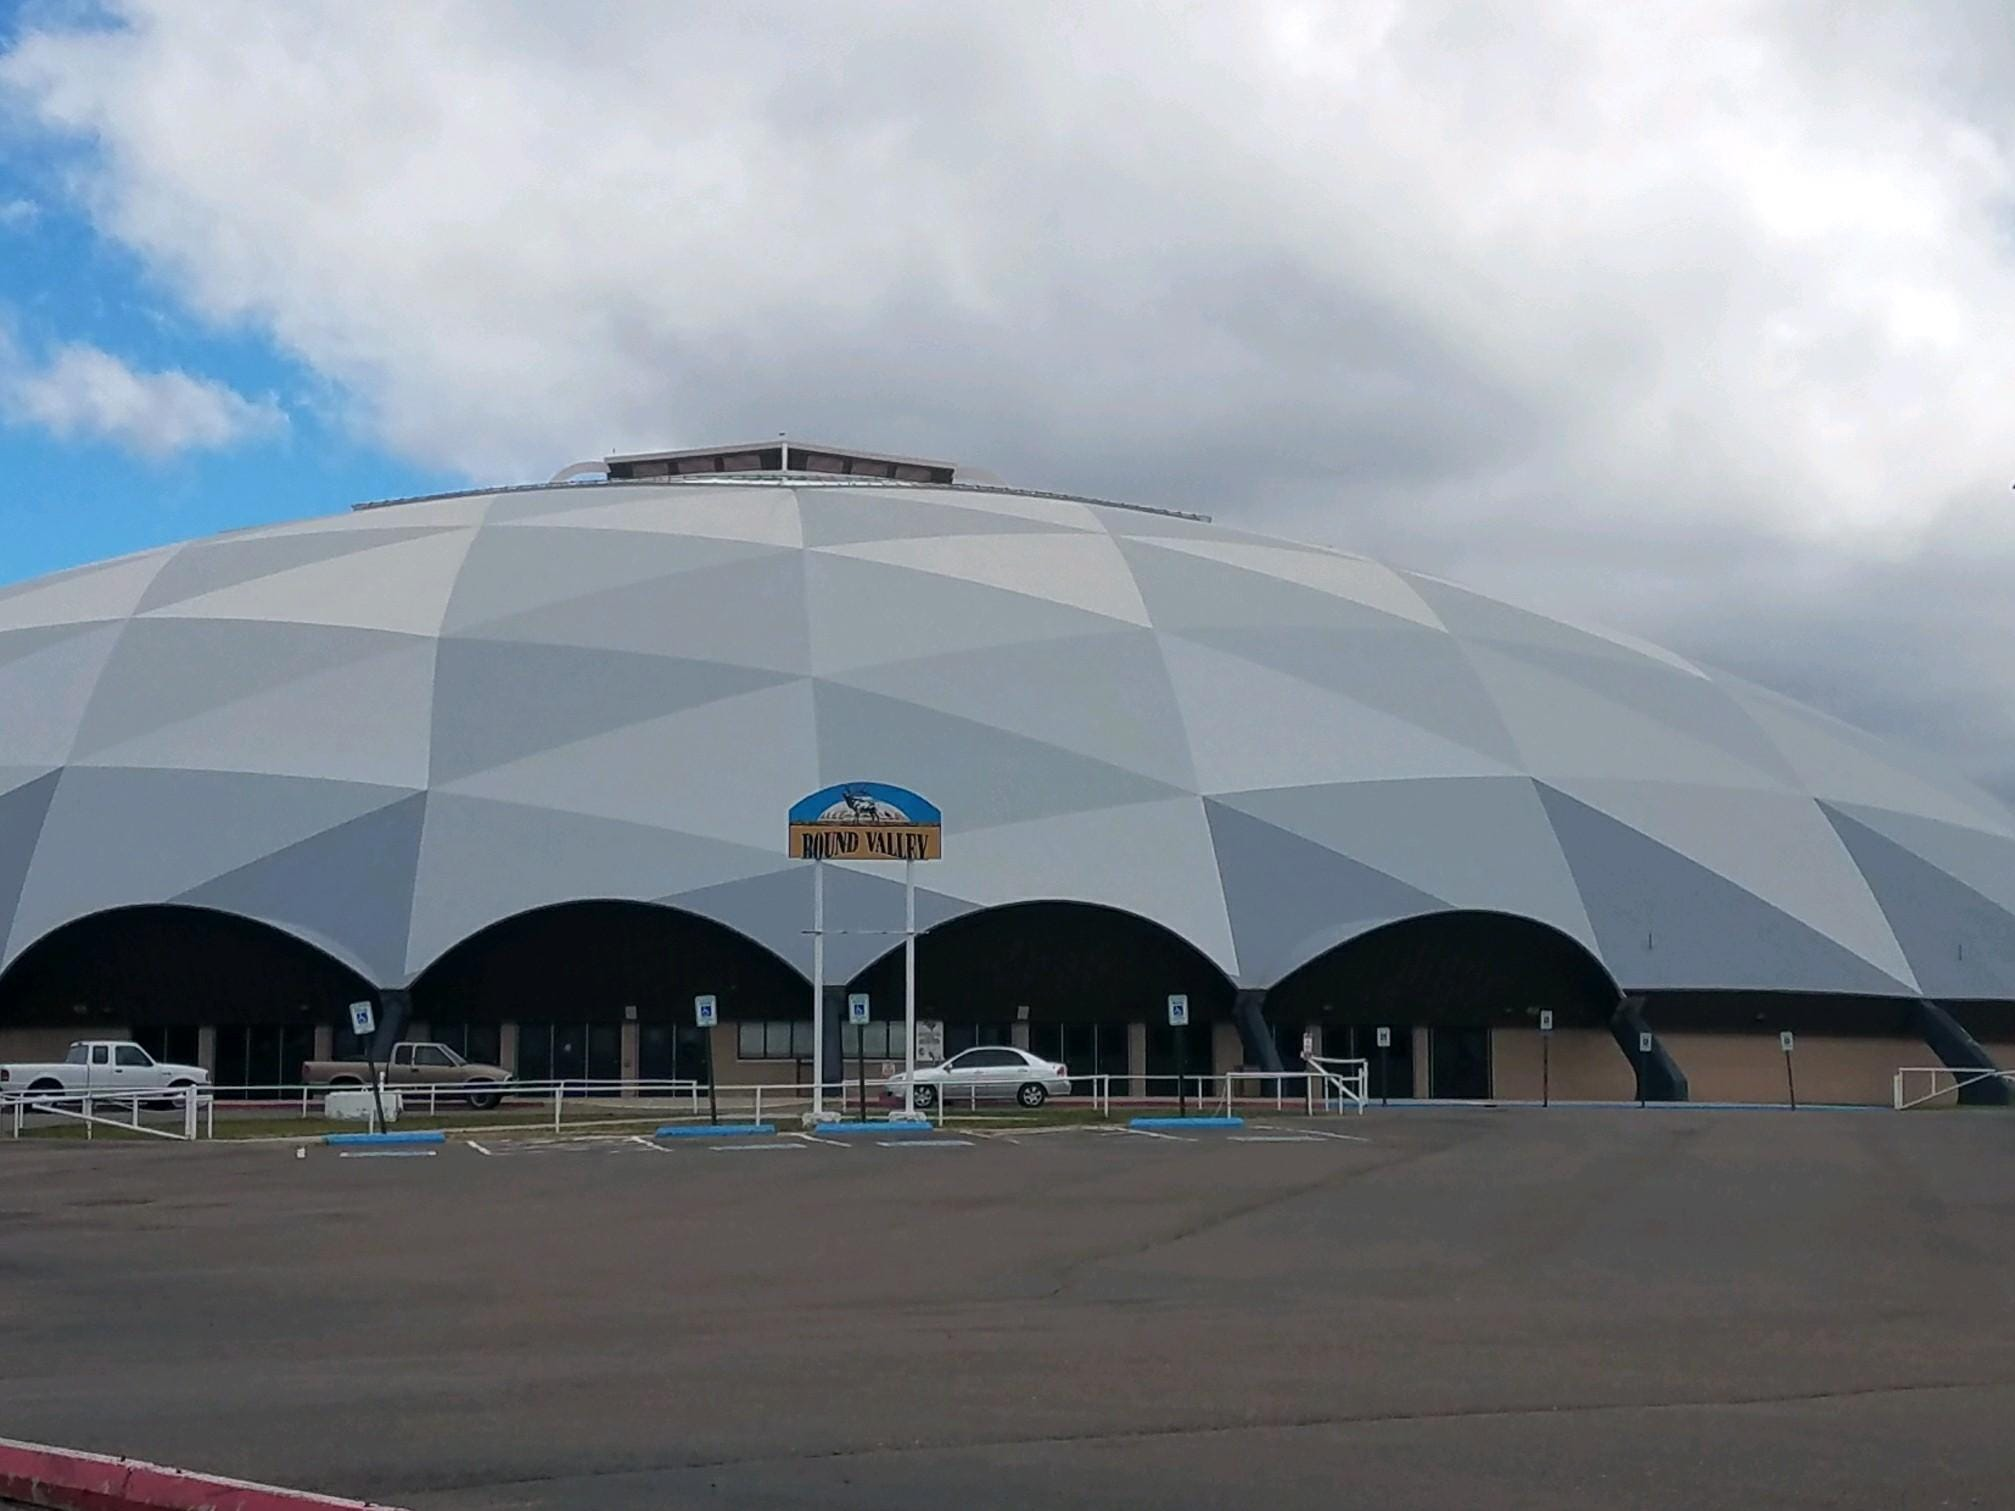 Eagar Round Valley High School's football stadium is known as the Ensphere and it's believed to be the first high school domed football stadium when it opened in 1991.